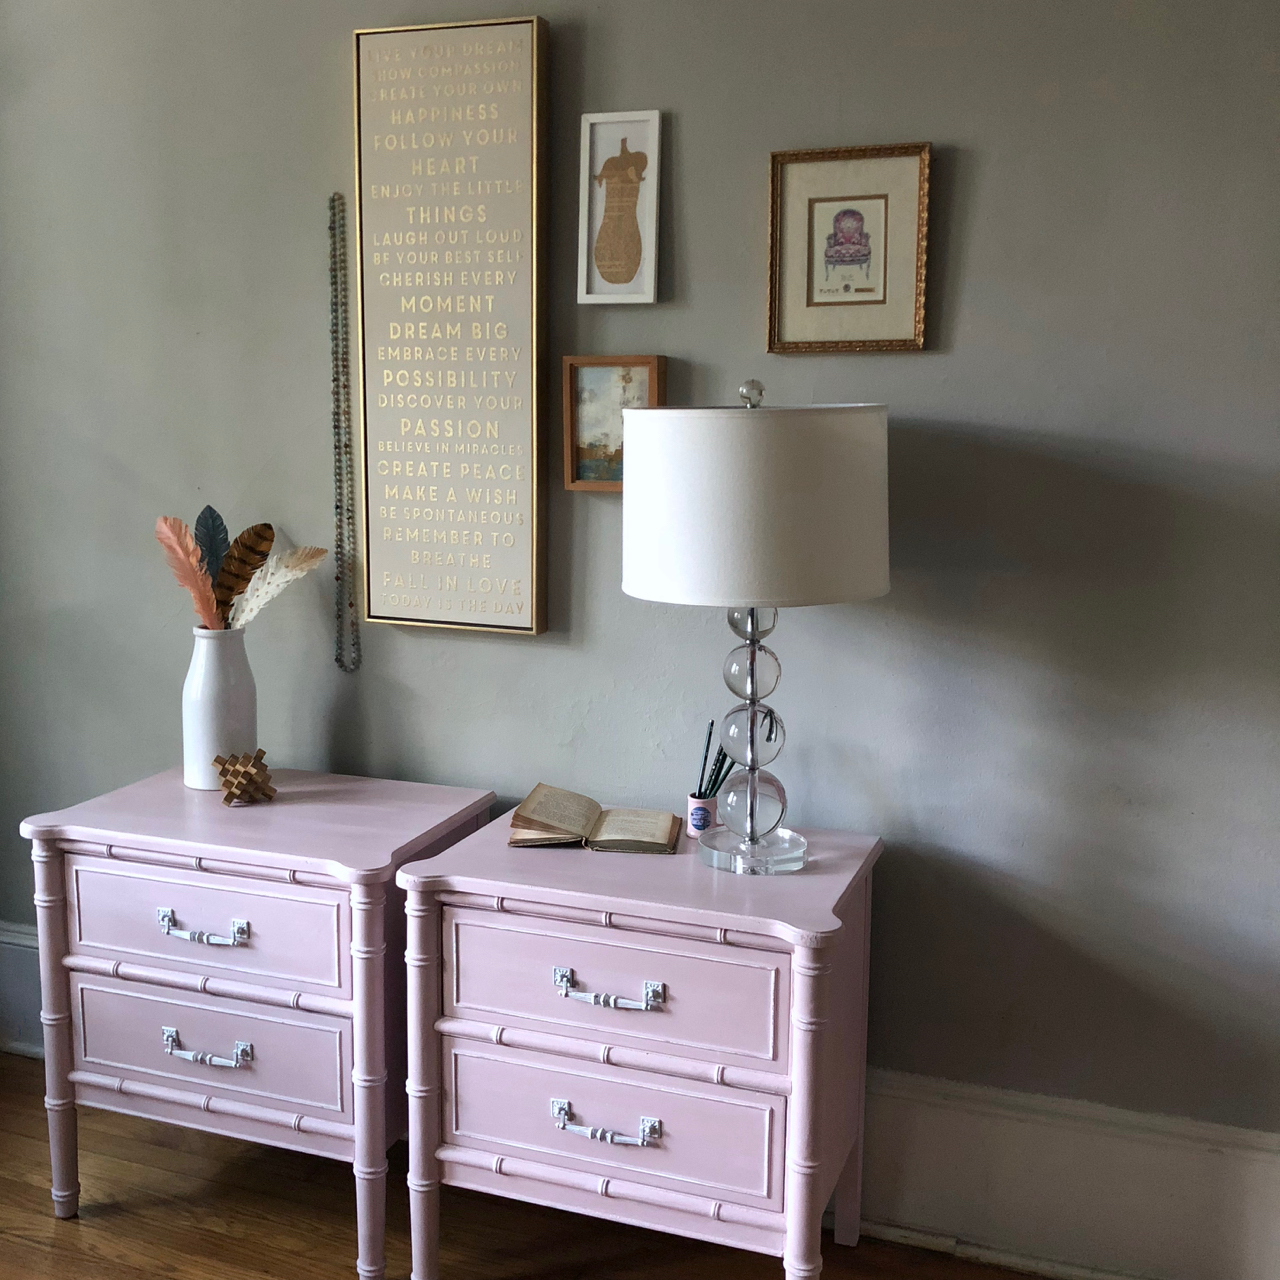 jo-torrijos-atlanta-painted-furniture-annie-sloan-antoinette-blush-pink-nightstands-2.jpg